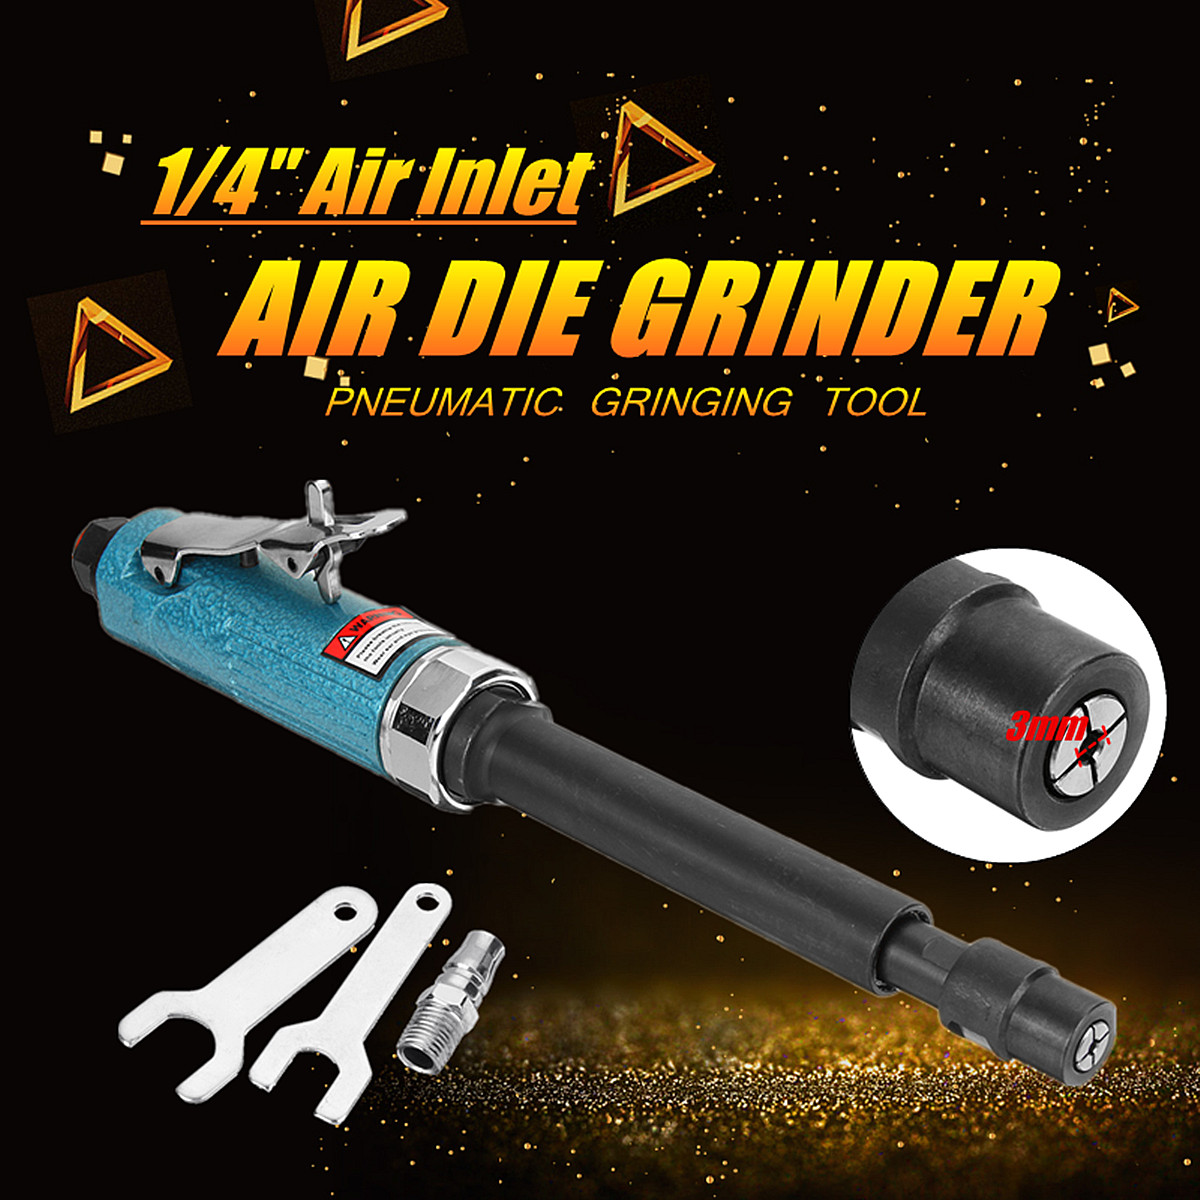 11 Extended Shaft 1/4 Long Air Die Grinder 20000Rpm Pneumatic Grinding Tool AG-307 Air Pressure 90 PSI High Speed Low Noise ag 307 air pressure 90 psi 11 extended shaft 1 4 long air die grinder 20000rpm pneumatic grinding tool high speed low noise